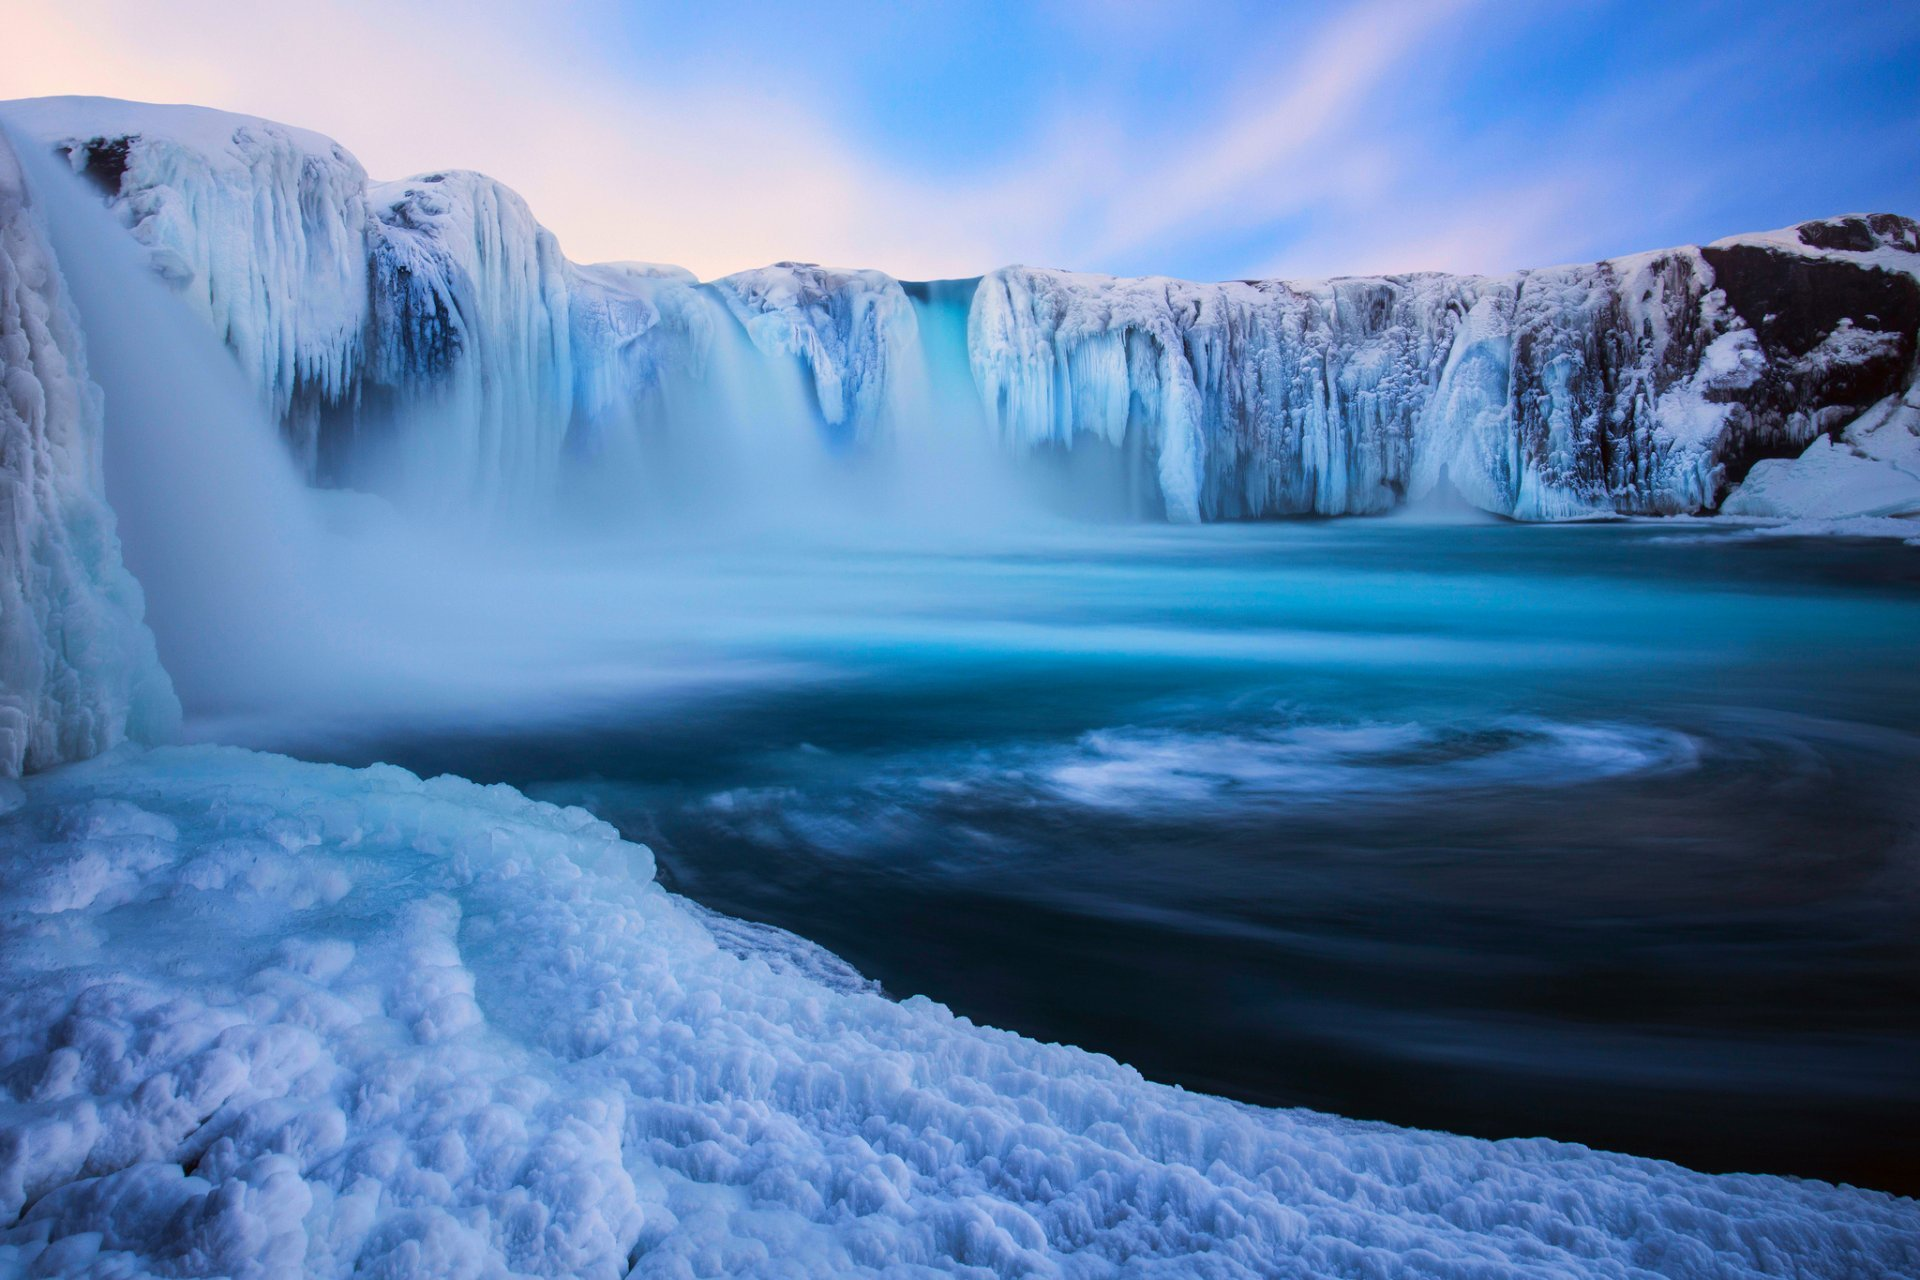 nature-iceland-godafoss-waterfall-snow-winter-december-by-eggles